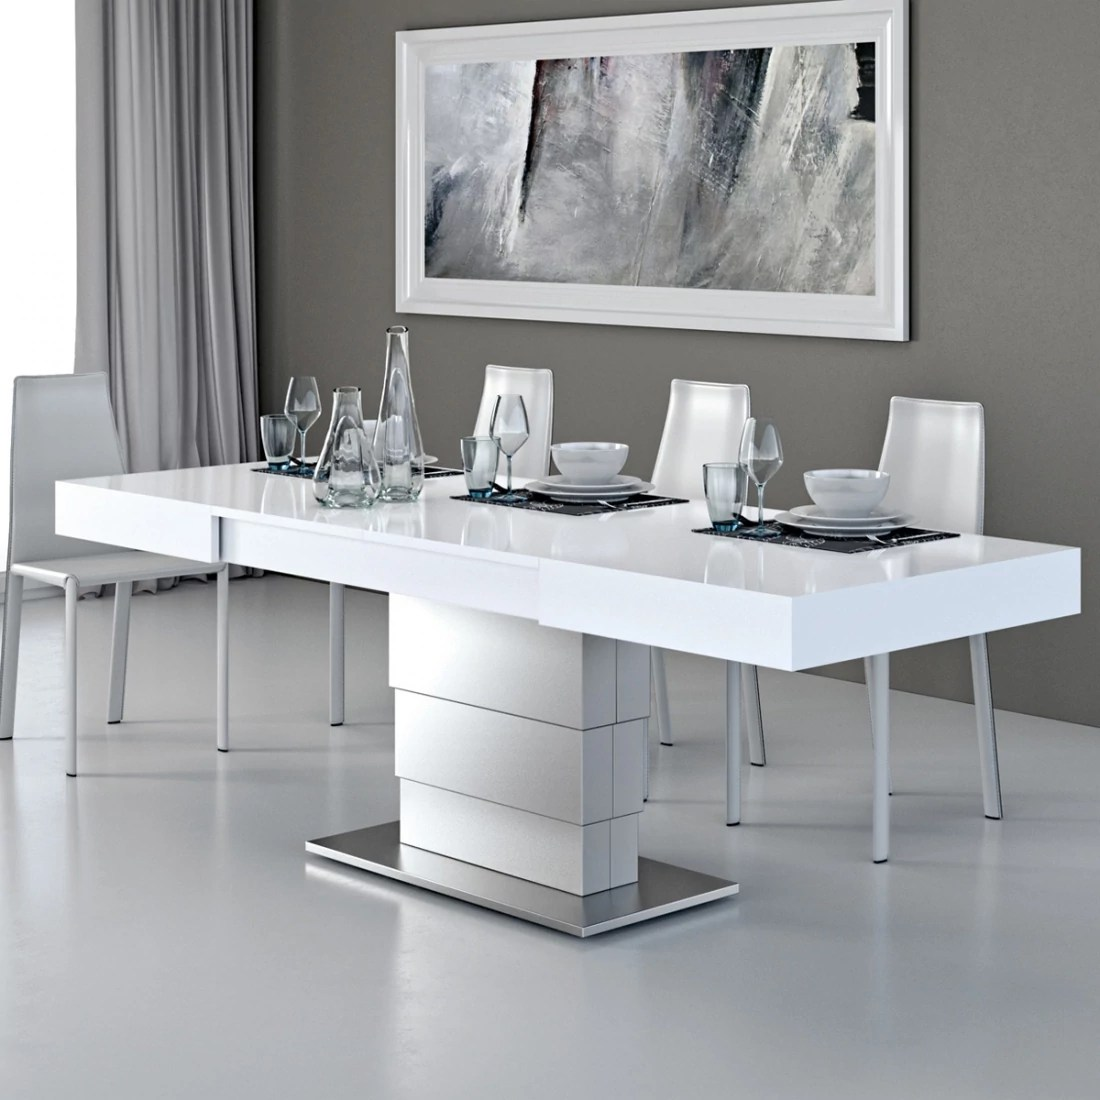 Table à Rallonge Design Table Basse Modulable Ares Fold Inox Zendart Design